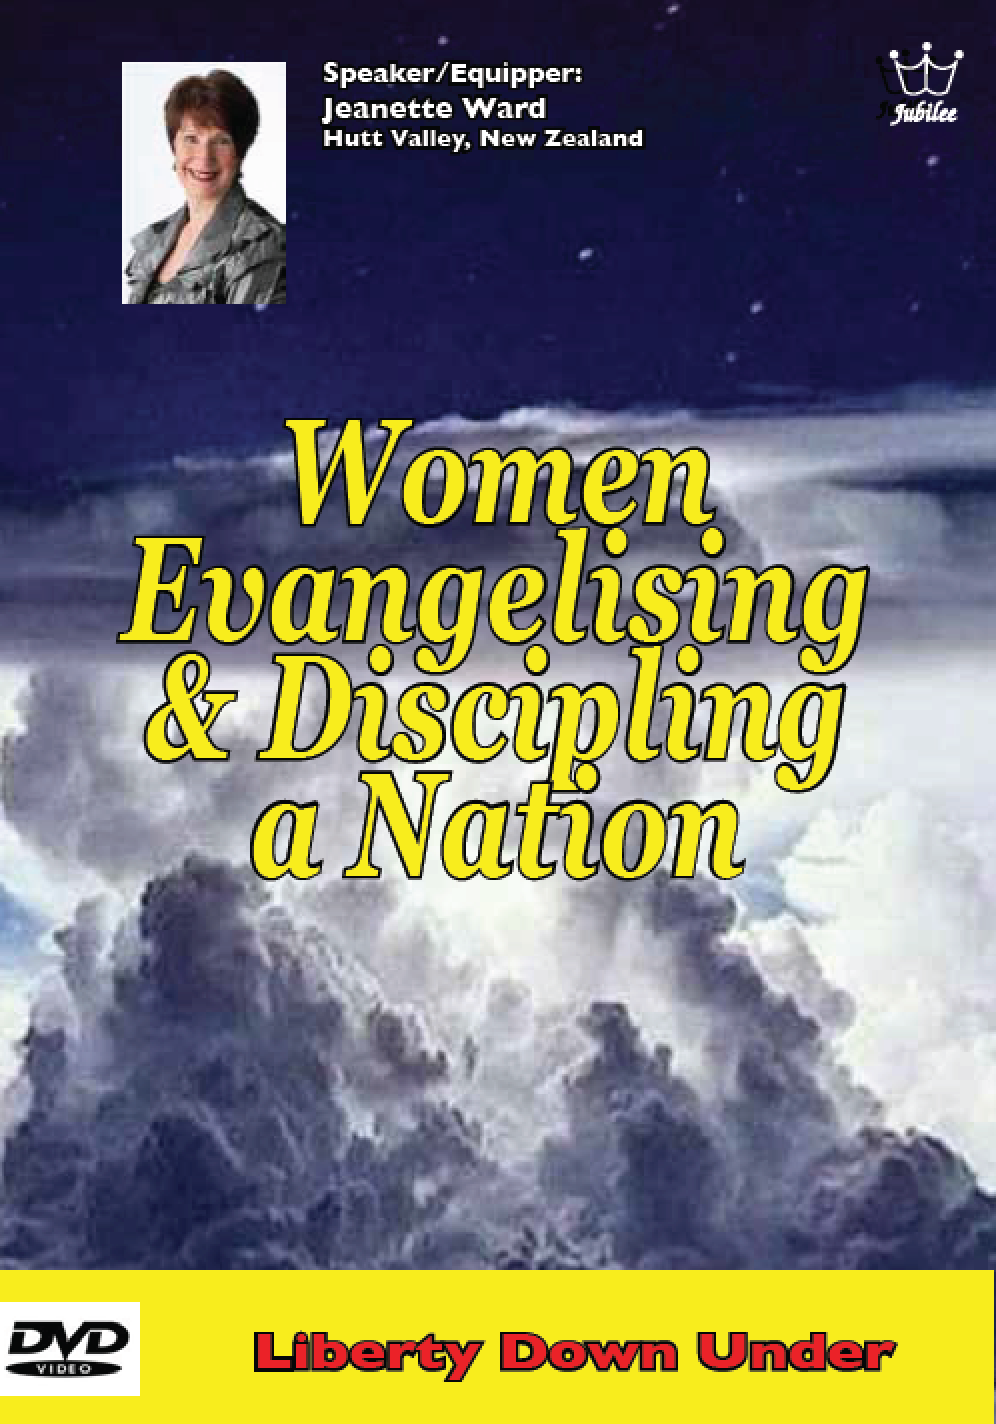 Women Evangelising & Discipling a nation, by Jeanette Ward, MP4 Download